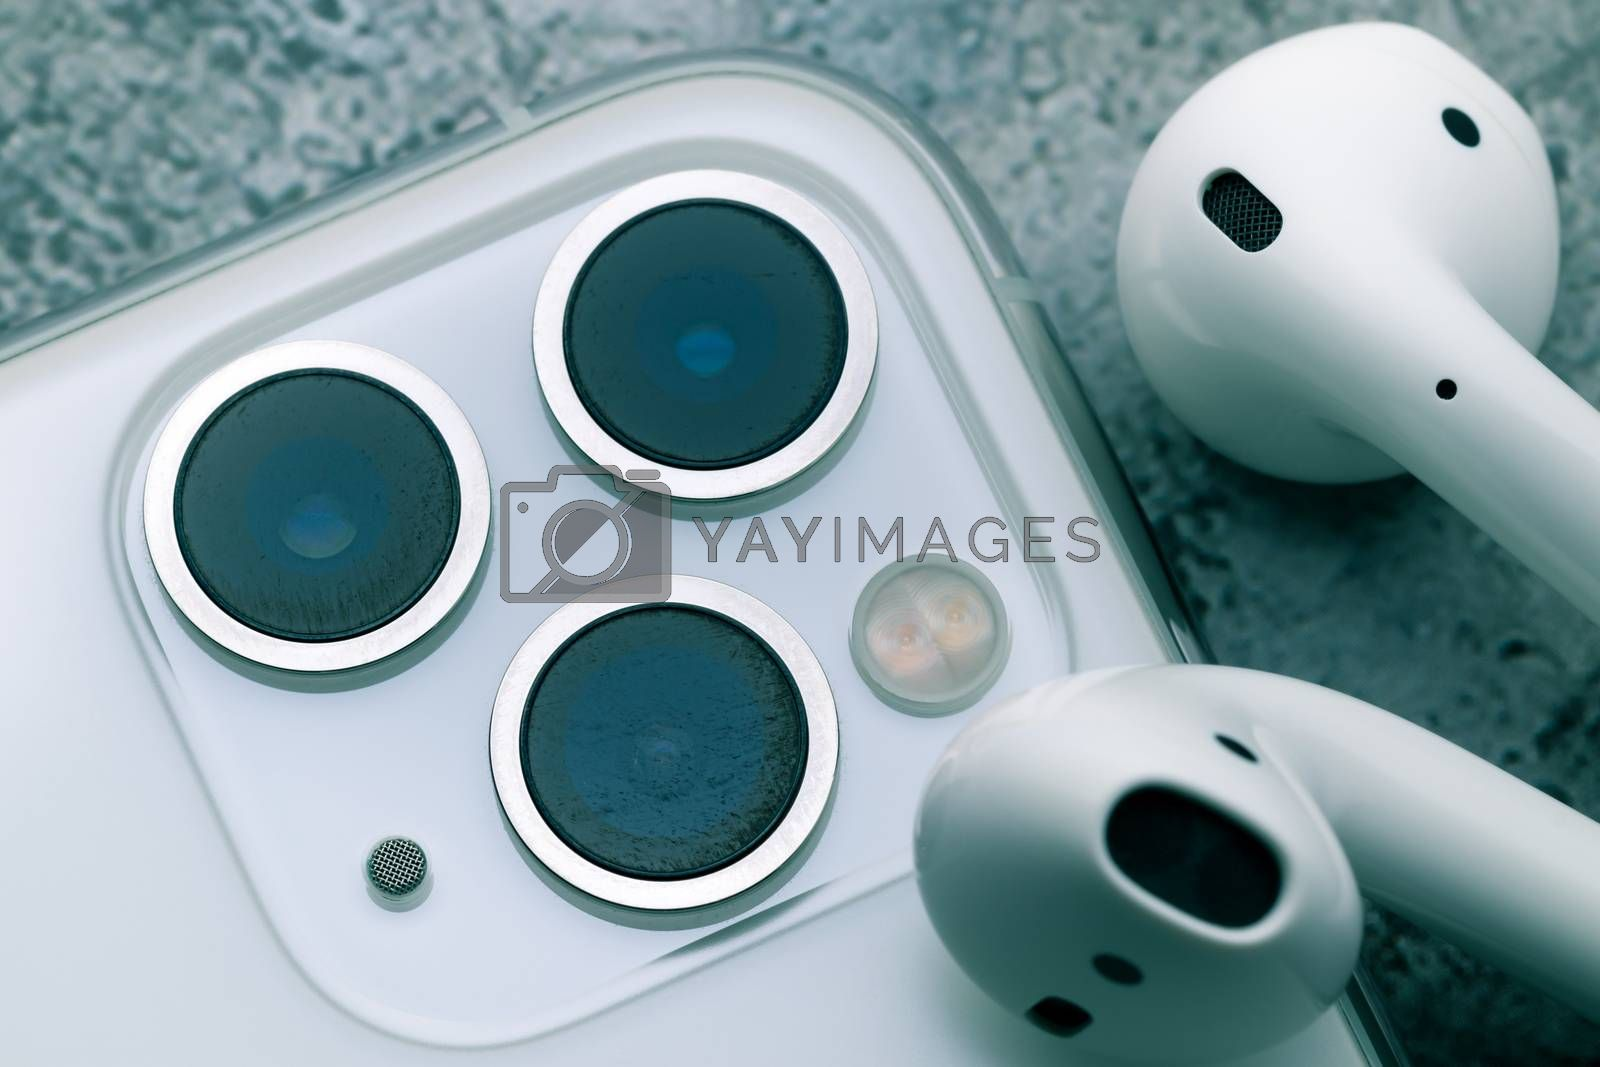 Close up shot for scratch on iPhone11 Pro Max rear camera lens, the triple camera system of ultra wide, wide and telephoto lenses. iPhone11 Pro Max and Airpods